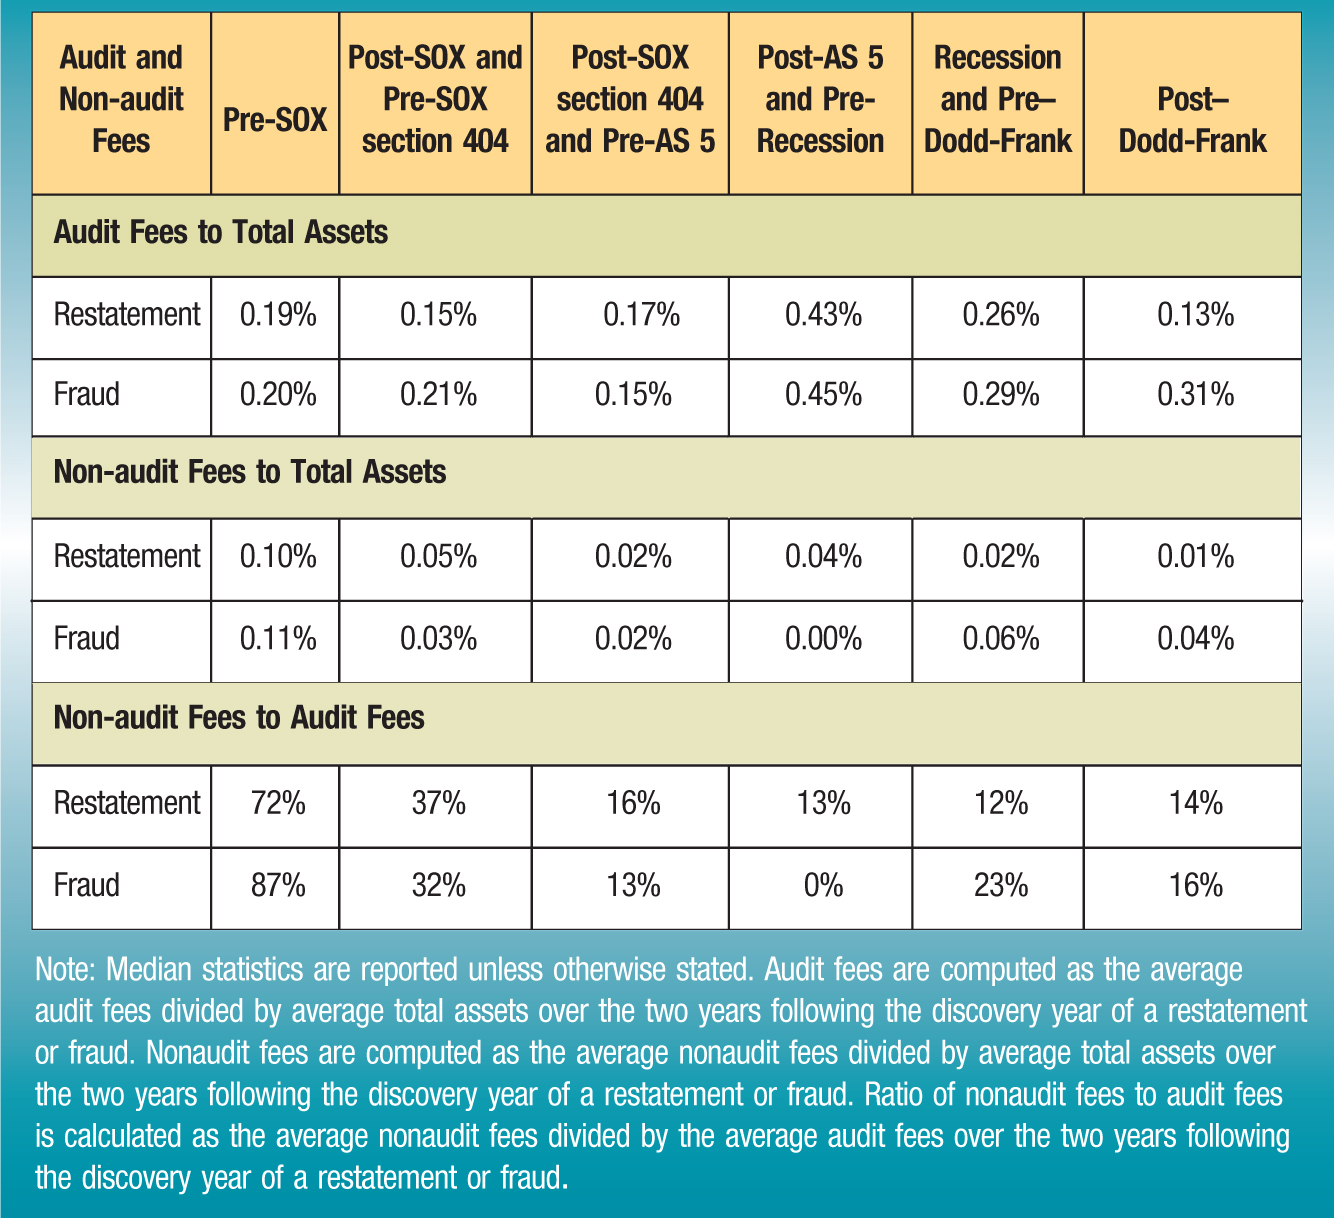 Audit and Non-audit Fees; Pre-SOX; Post-SOX and Pre-SOX section 404; Post-SOX section 404 and Pre-AS 5; Post-AS 5 and Pre-Recession; Recession and Pre–Dodd-Frank; Post–Dodd-Frank Audit Fees to Total Assets Restatement; 0.19%; 0.15%; 0.17%; 0.43%; 0.26%; 0.13% Fraud; 0.20%; 0.21%; 0.15%; 0.45%; 0.29%; 0.31% Non-audit Fees to Total Assets Restatement; 0.10%; 0.05%; 0.02%; 0.04%; 0.02%; 0.01% Fraud; 0.11%; 0.03%; 0.02%; 0.00%; 0.06%; 0.04% Non-audit Fees to Audit Fees Restatement; 72%; 37%; 16%; 13%; 12%; 14% Fraud; 87%; 32%; 13%; 0%; 23%; 16% Note: Median statistics are reported unless otherwise stated. Audit fees are computed as the average audit fees divided by average total assets over the two years following the discovery year of a restatement or fraud. Nonaudit fees are computed as the average nonaudit fees divided by average total assets over the two years following the discovery year of a restatement or fraud. Ratio of nonaudit fees to audit fees is calculated as the average nonaudit fees divided by the average audit fees over the two years following the discovery year of a restatement or fraud.